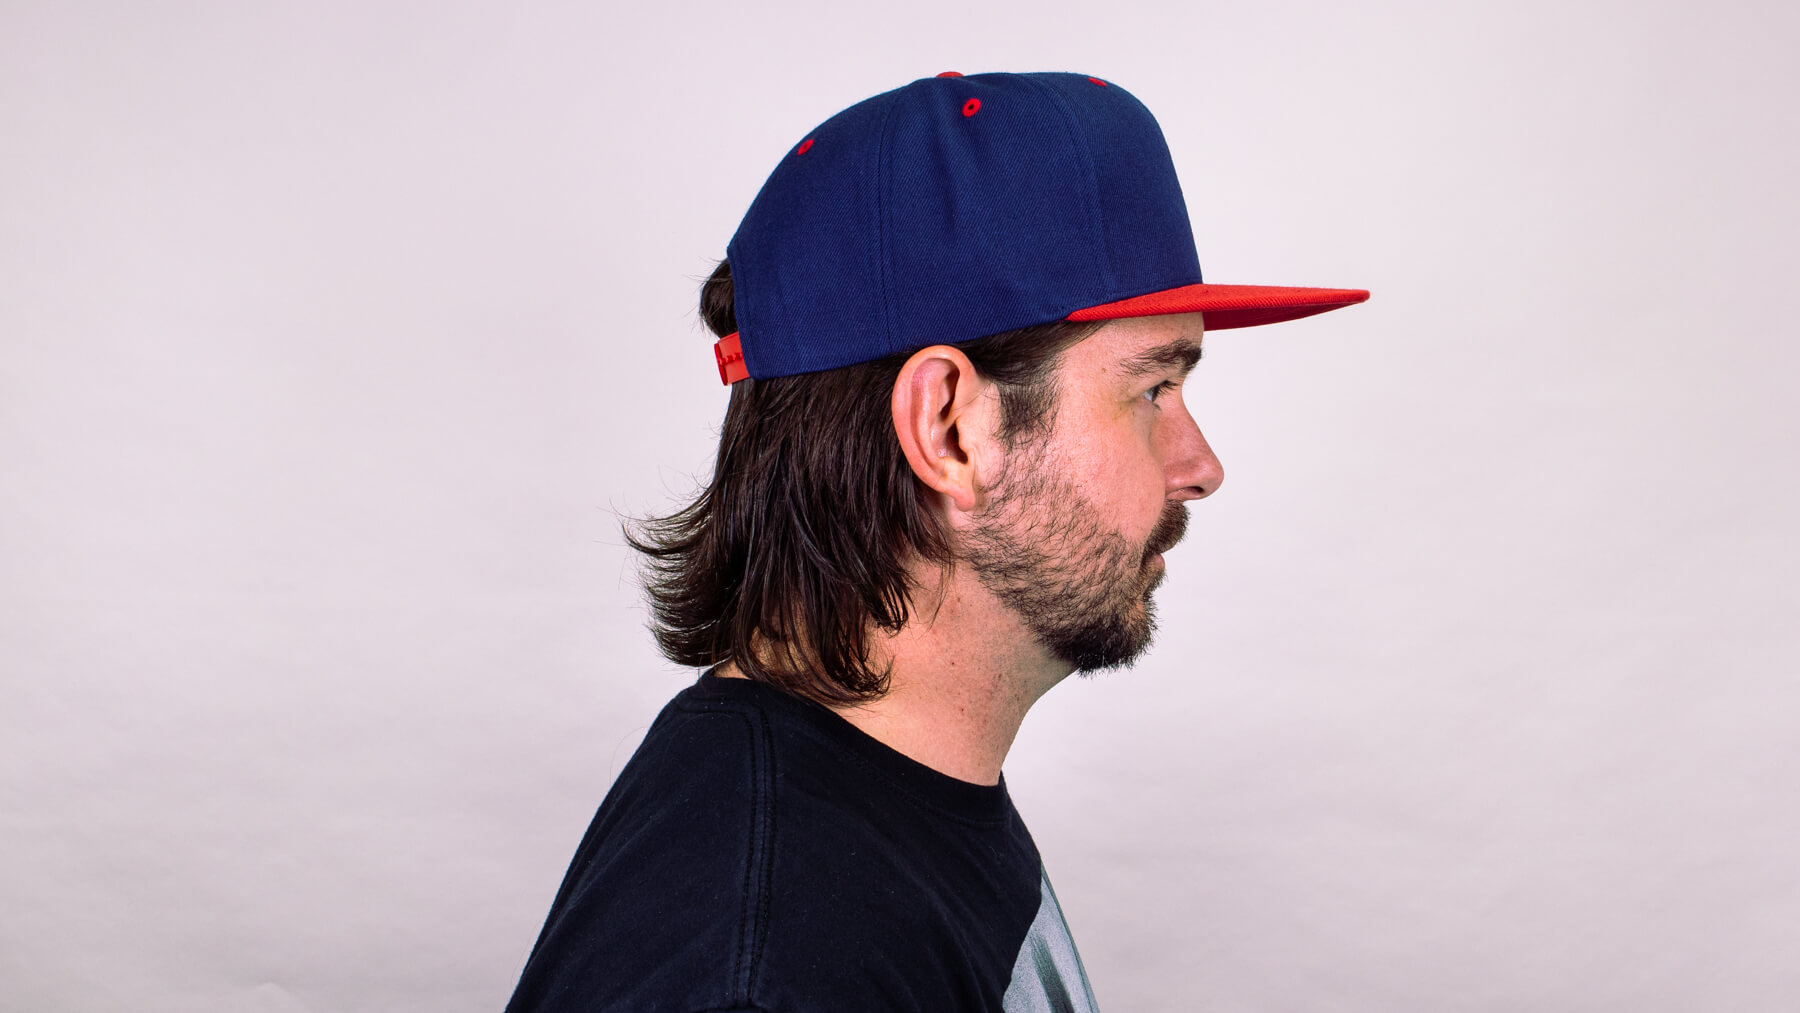 Wearing a hat with awkward stage hairstyle side profile view